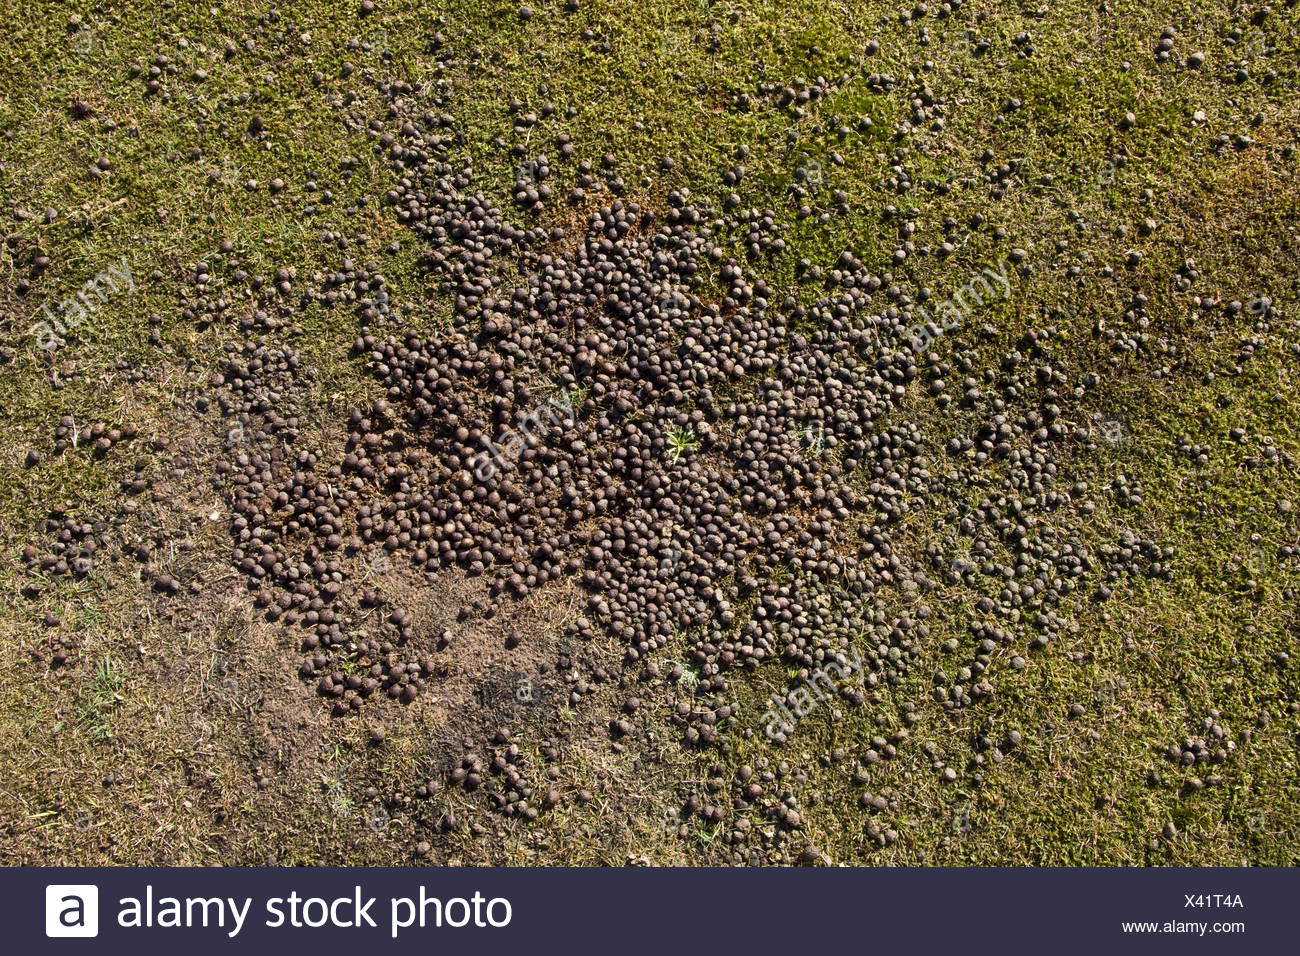 Rabbit droppings on closely grazed grass - Stock Image